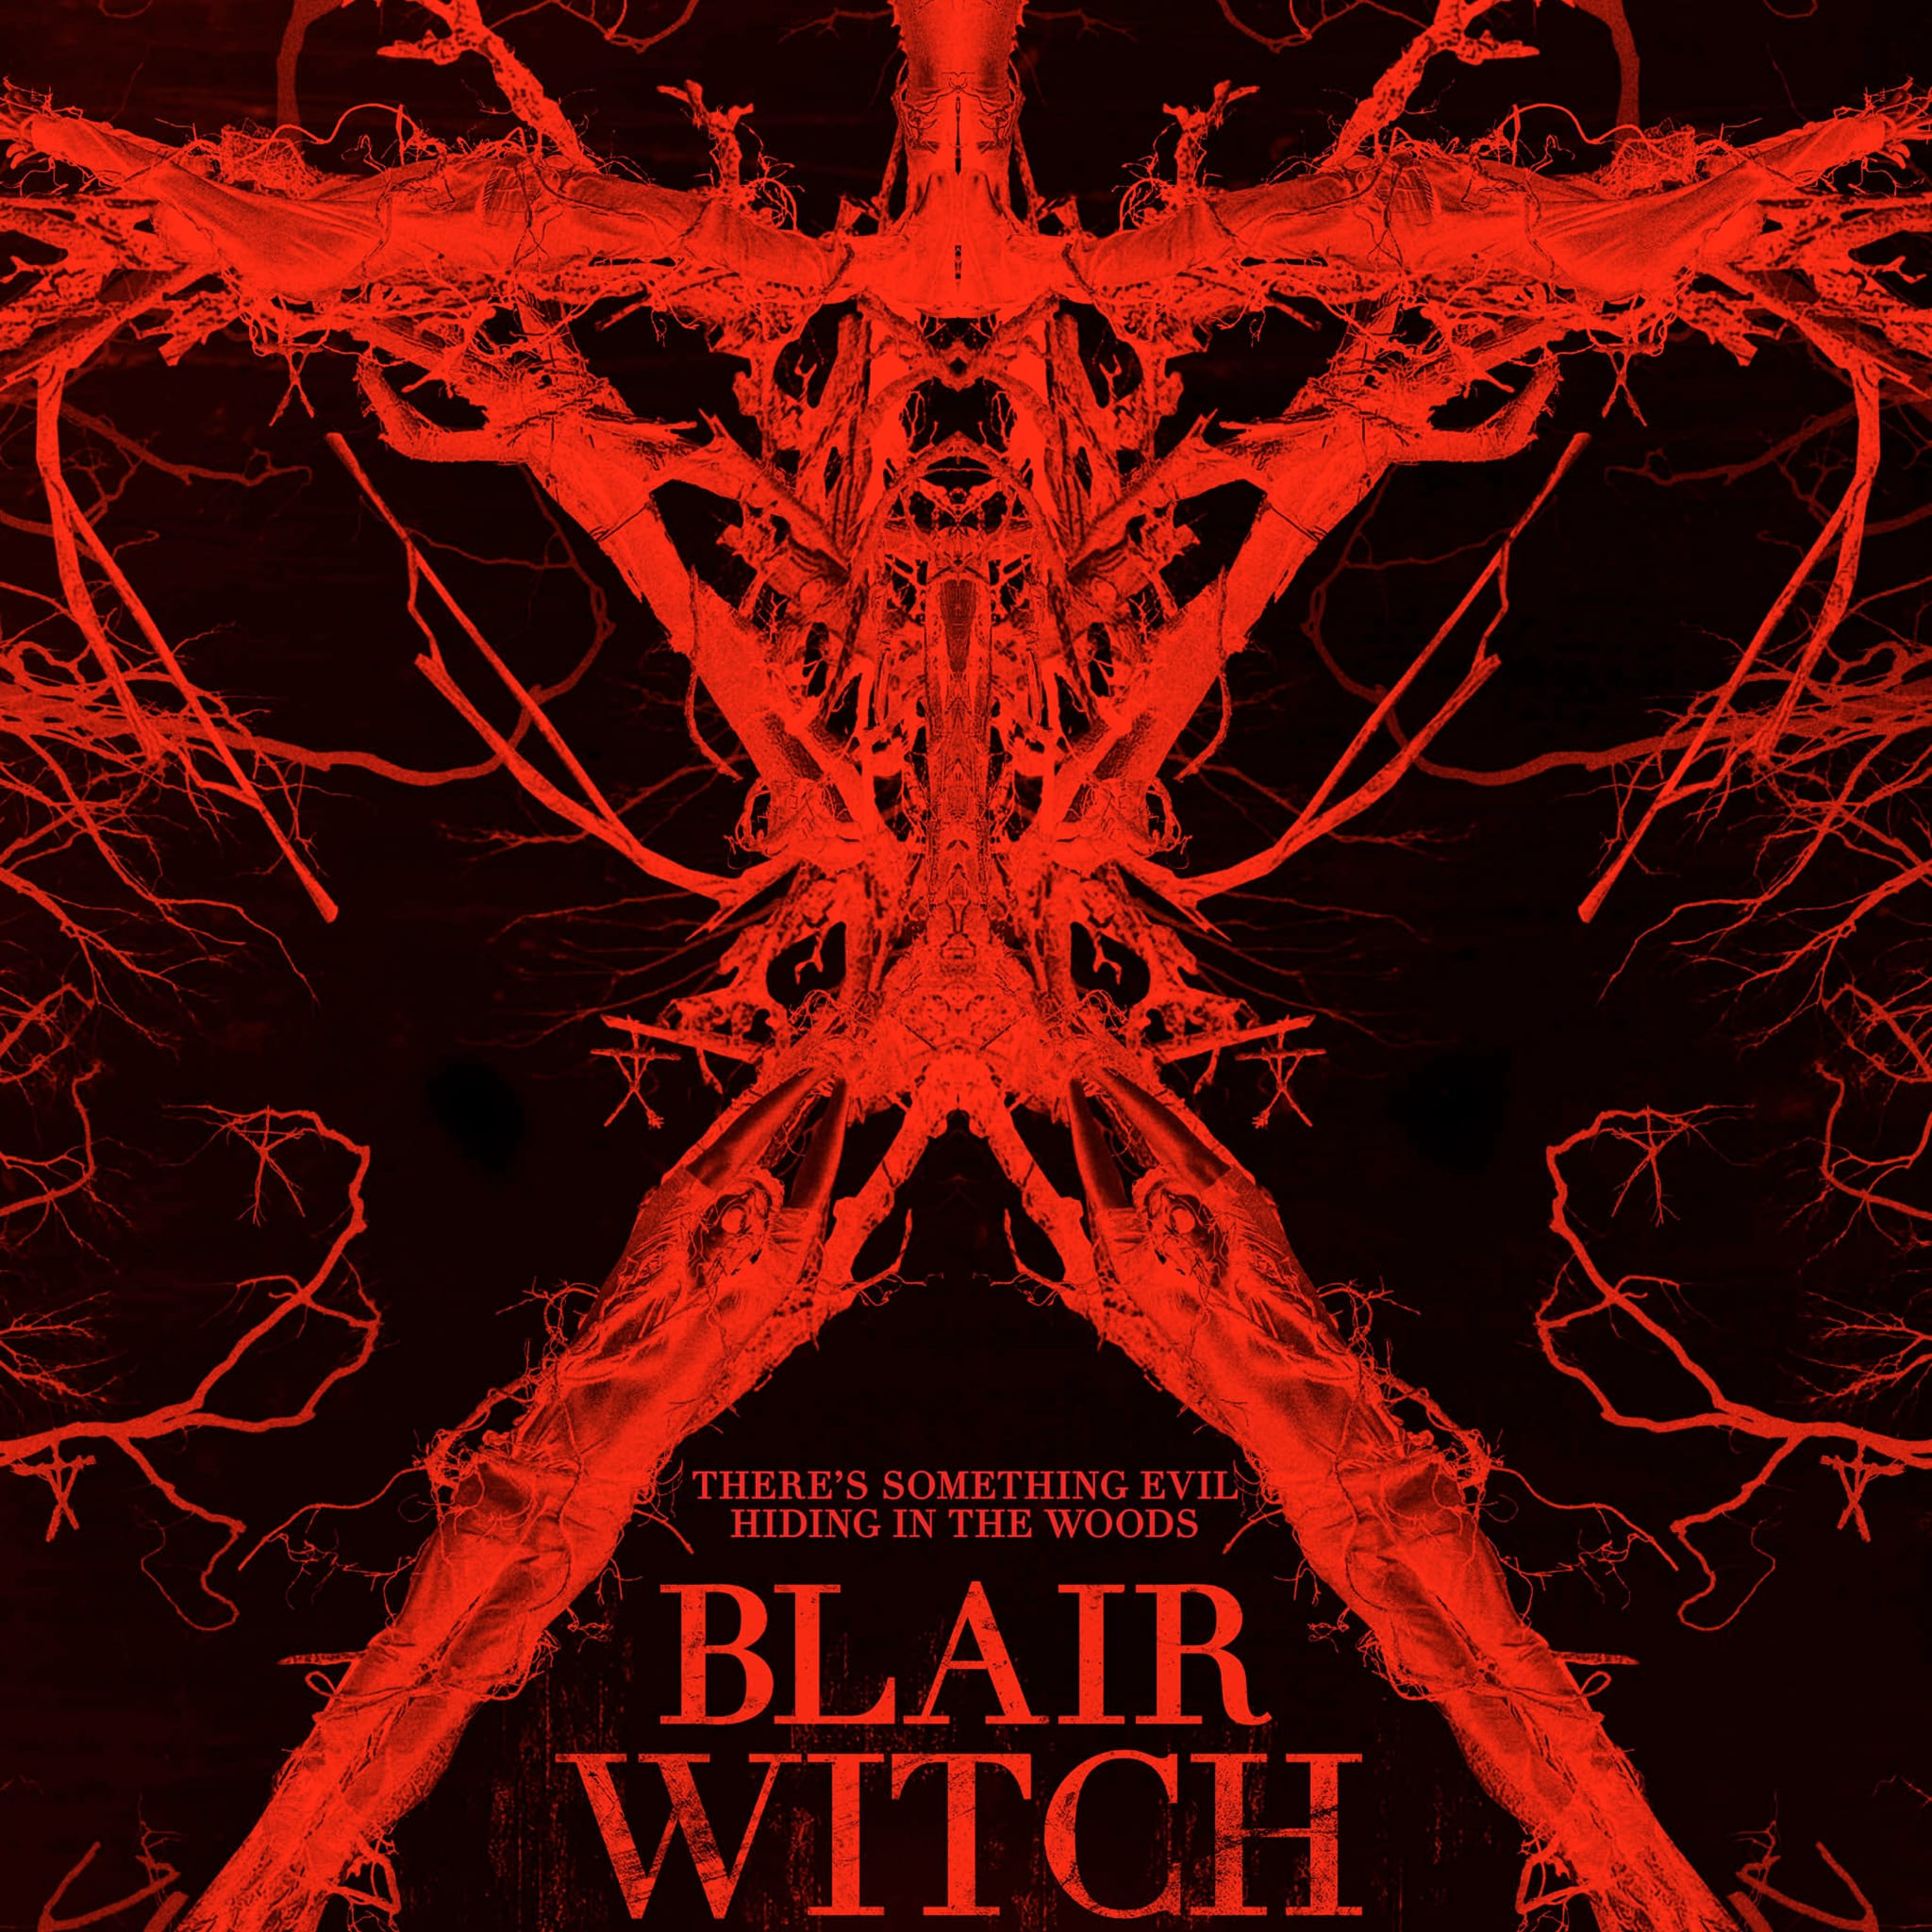 Blair Witch Wallpapers hd